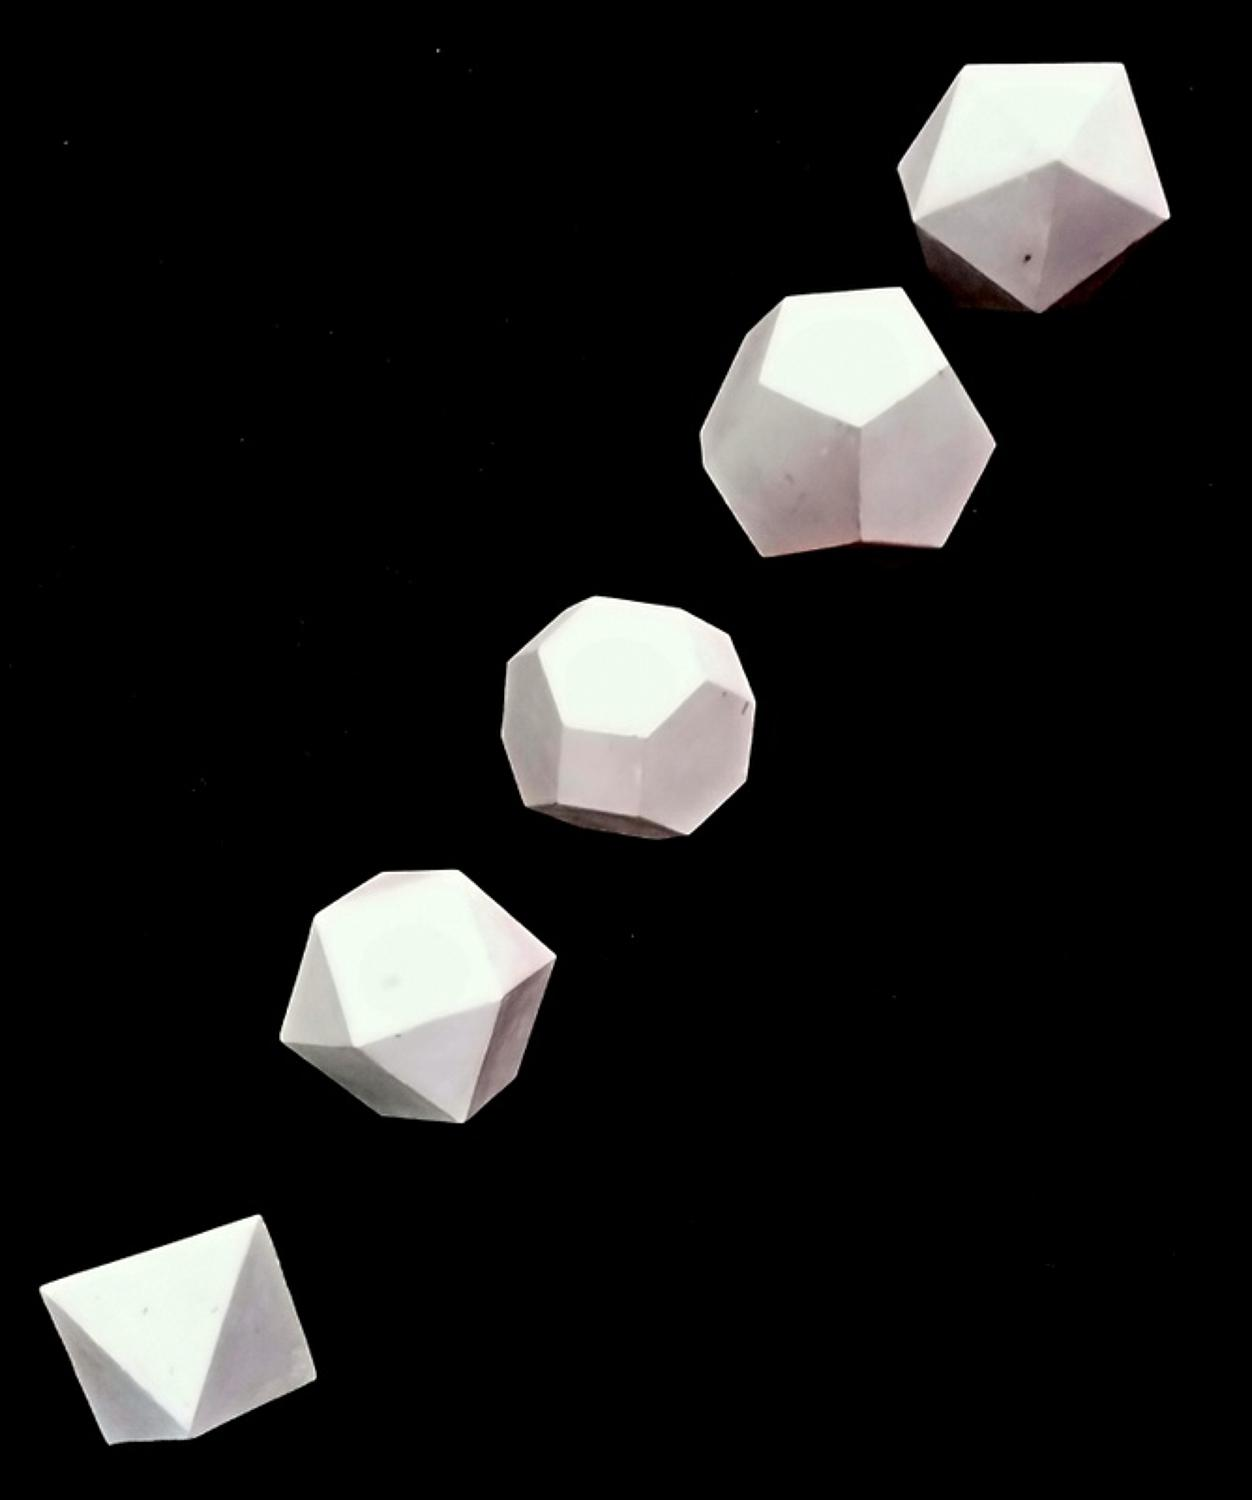 5 x Geometric Solids 1960's